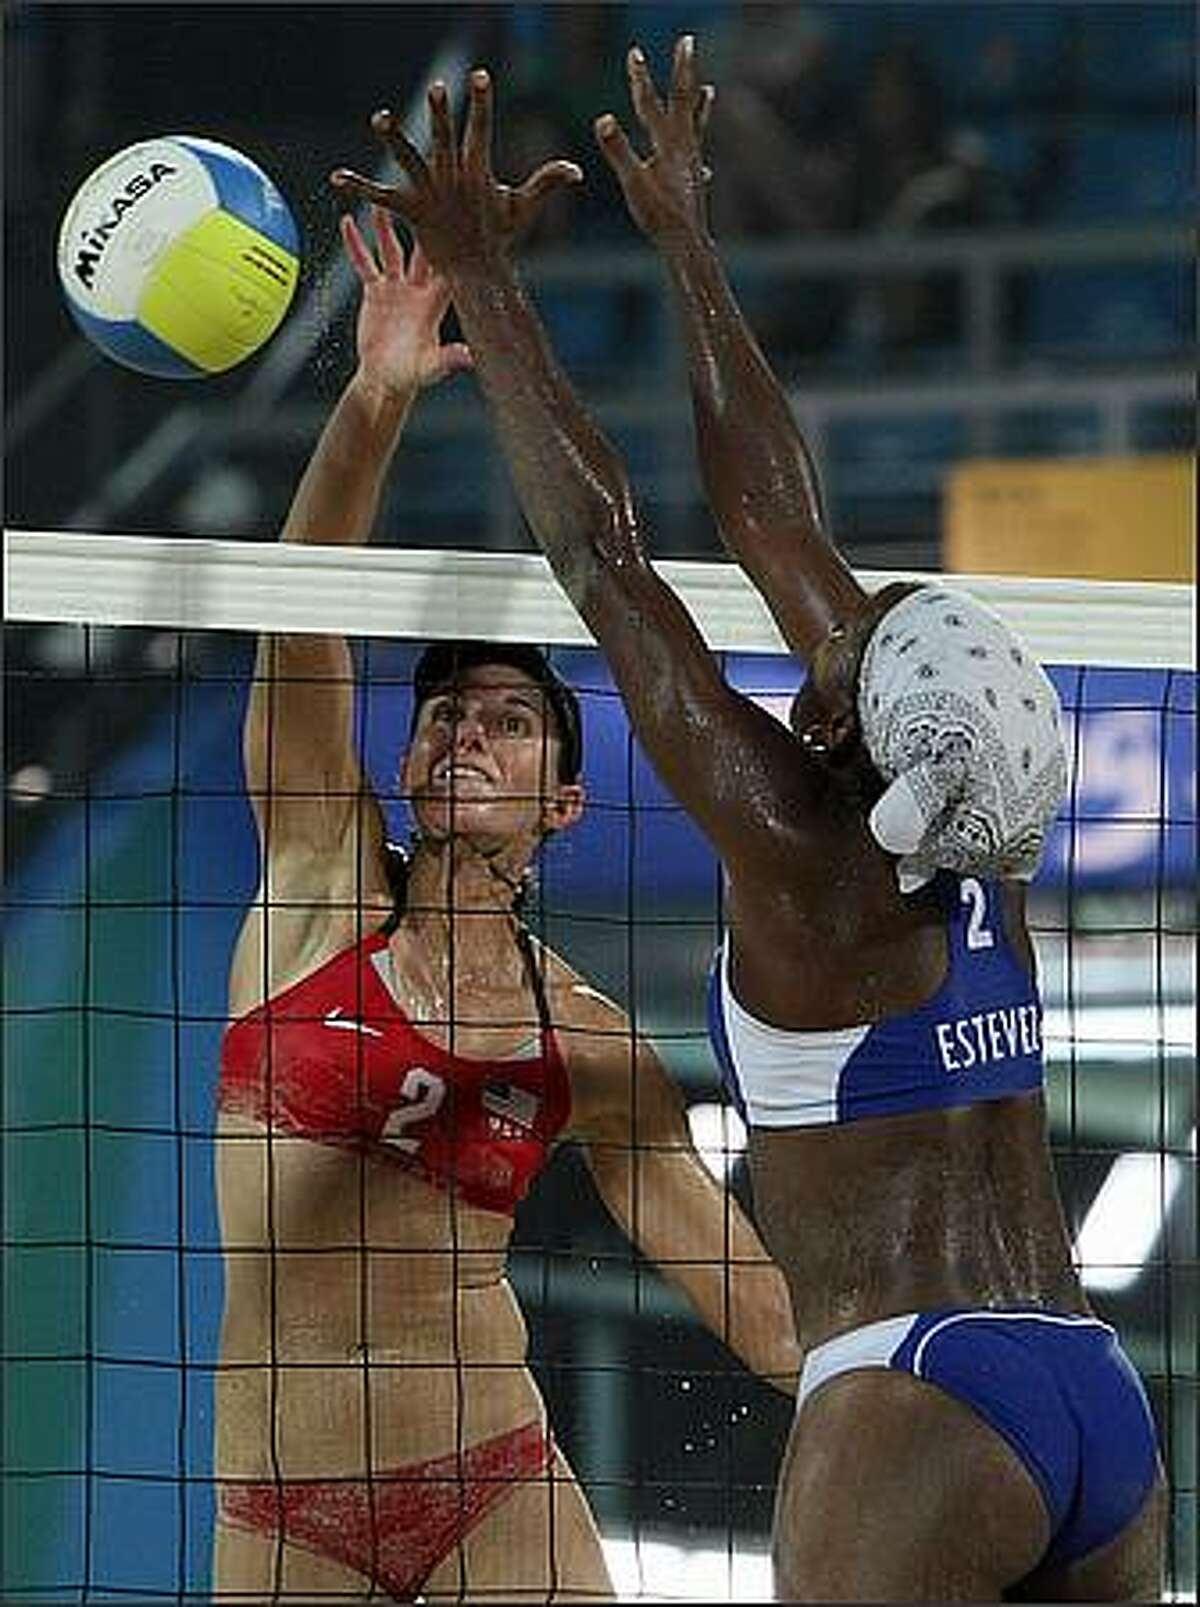 Elaine Youngs (L) of US smashes the ball against Cuba's Imara Esteves Ribalta in their Women's preliminary beach volleyball match at Beijing's Chaoyang Park Beach Volleyball Ground during the 2008 Beijing Olympic Games. US won 2-1. (Photo THOMAS COEX/AFP/Getty Images)